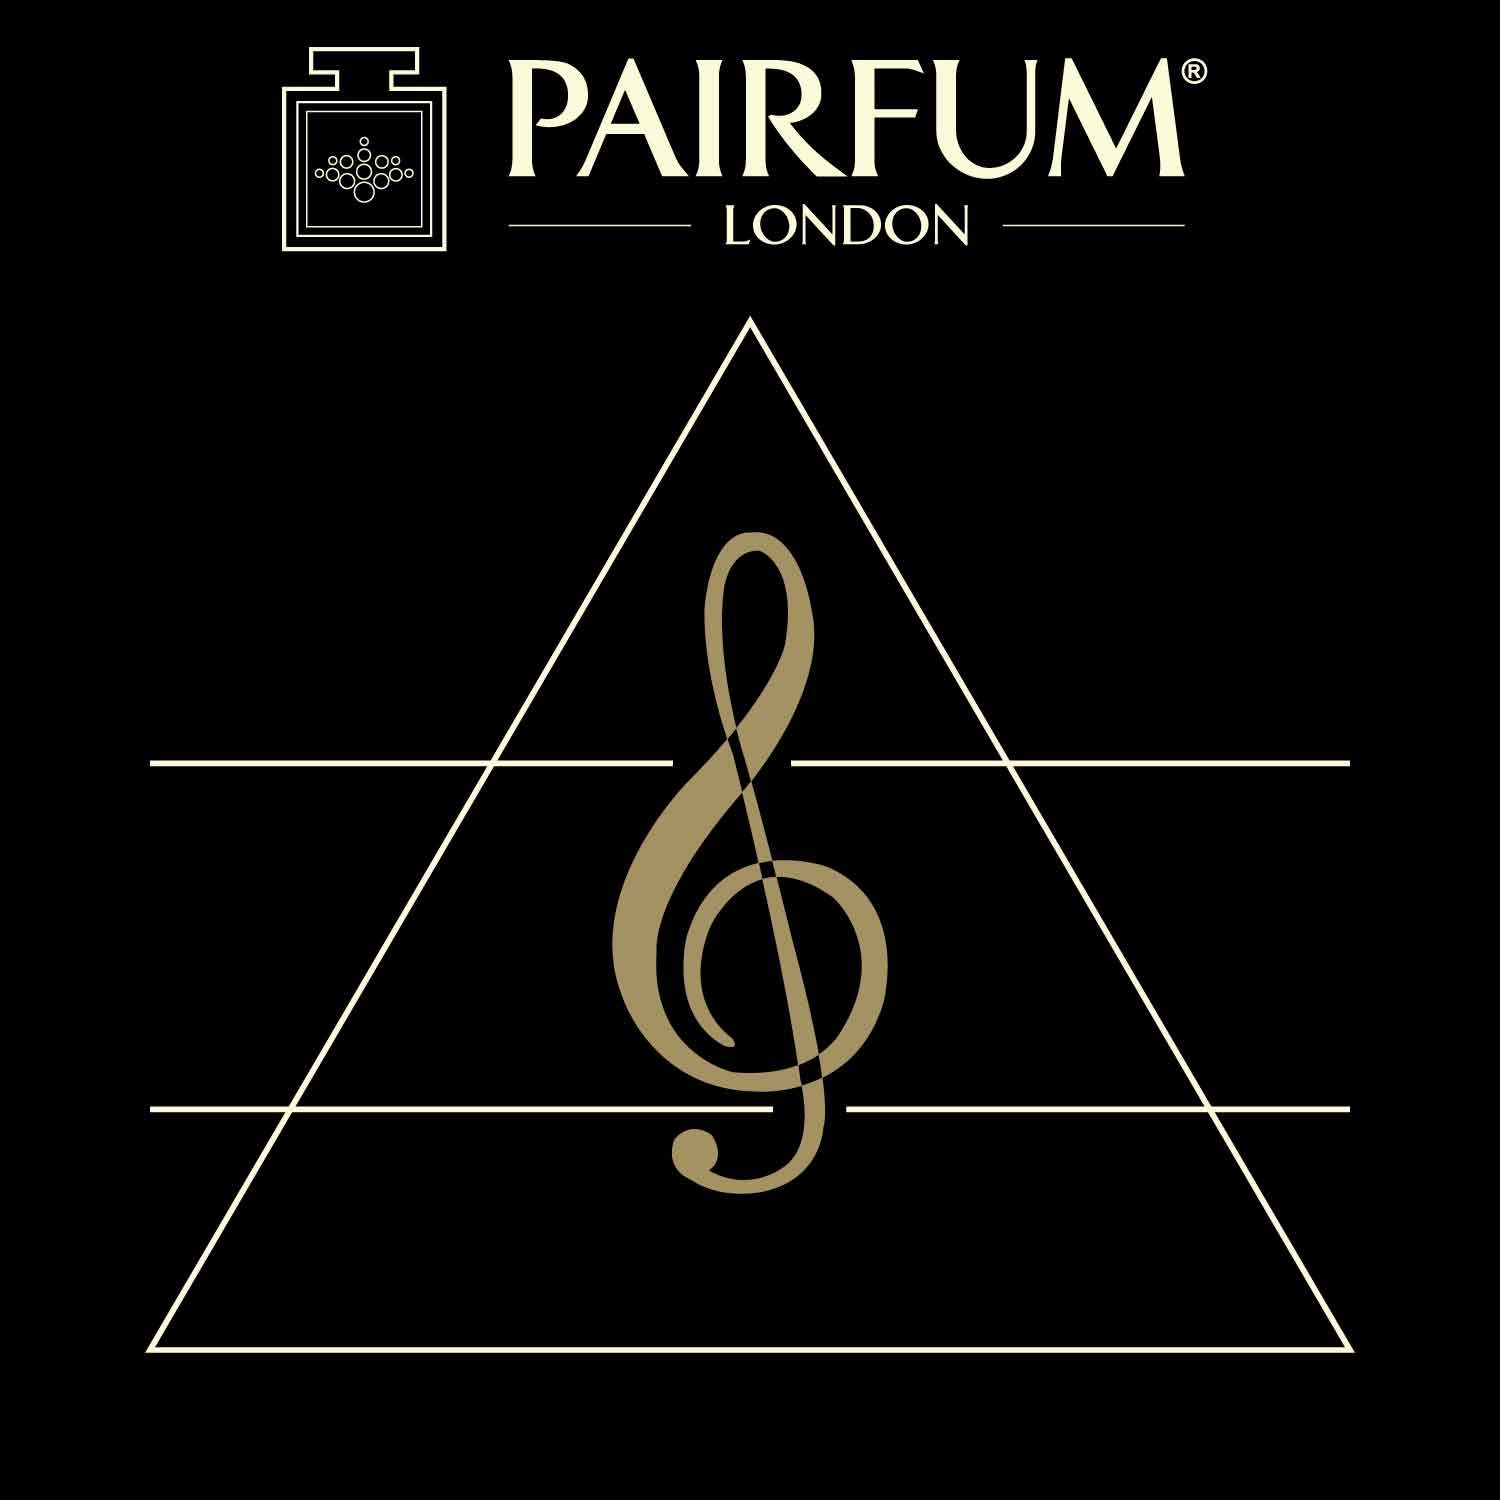 PAIRFUM Olfactory Triangle Fragrance Description